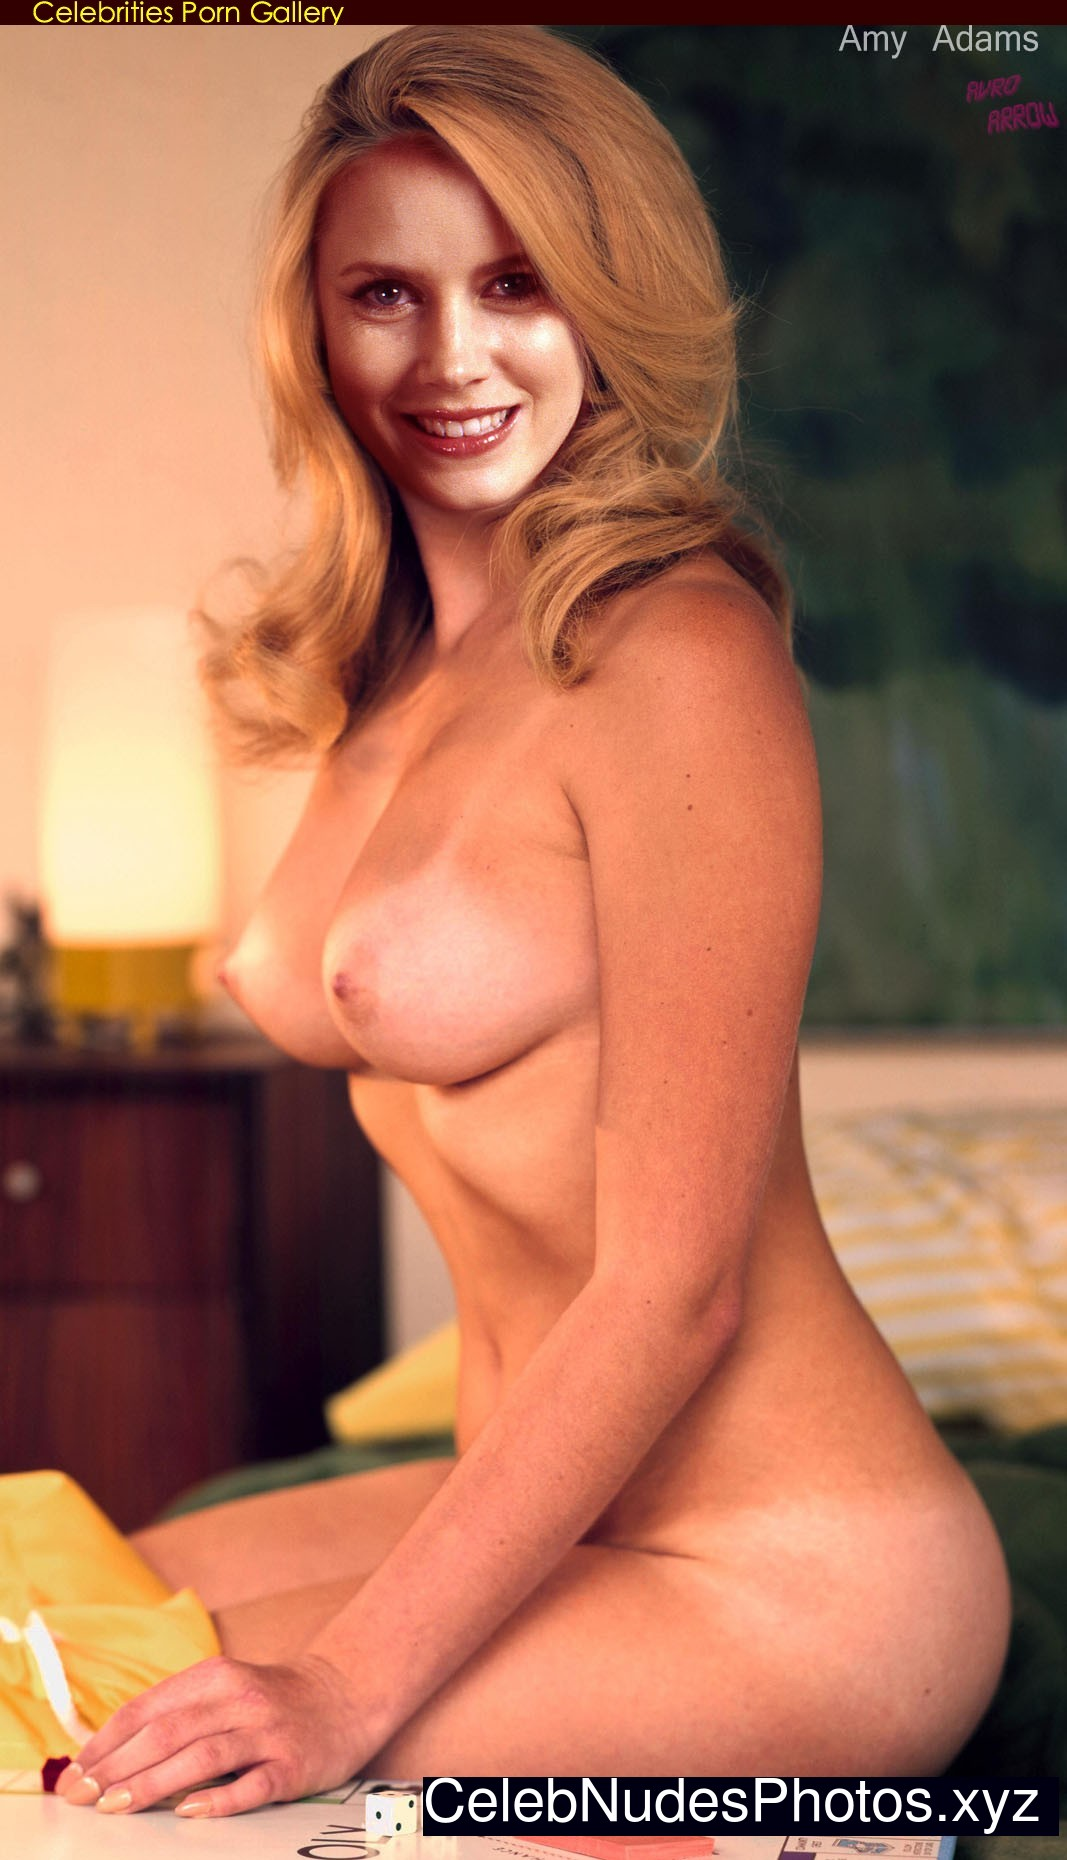 Amy adams fake nudes